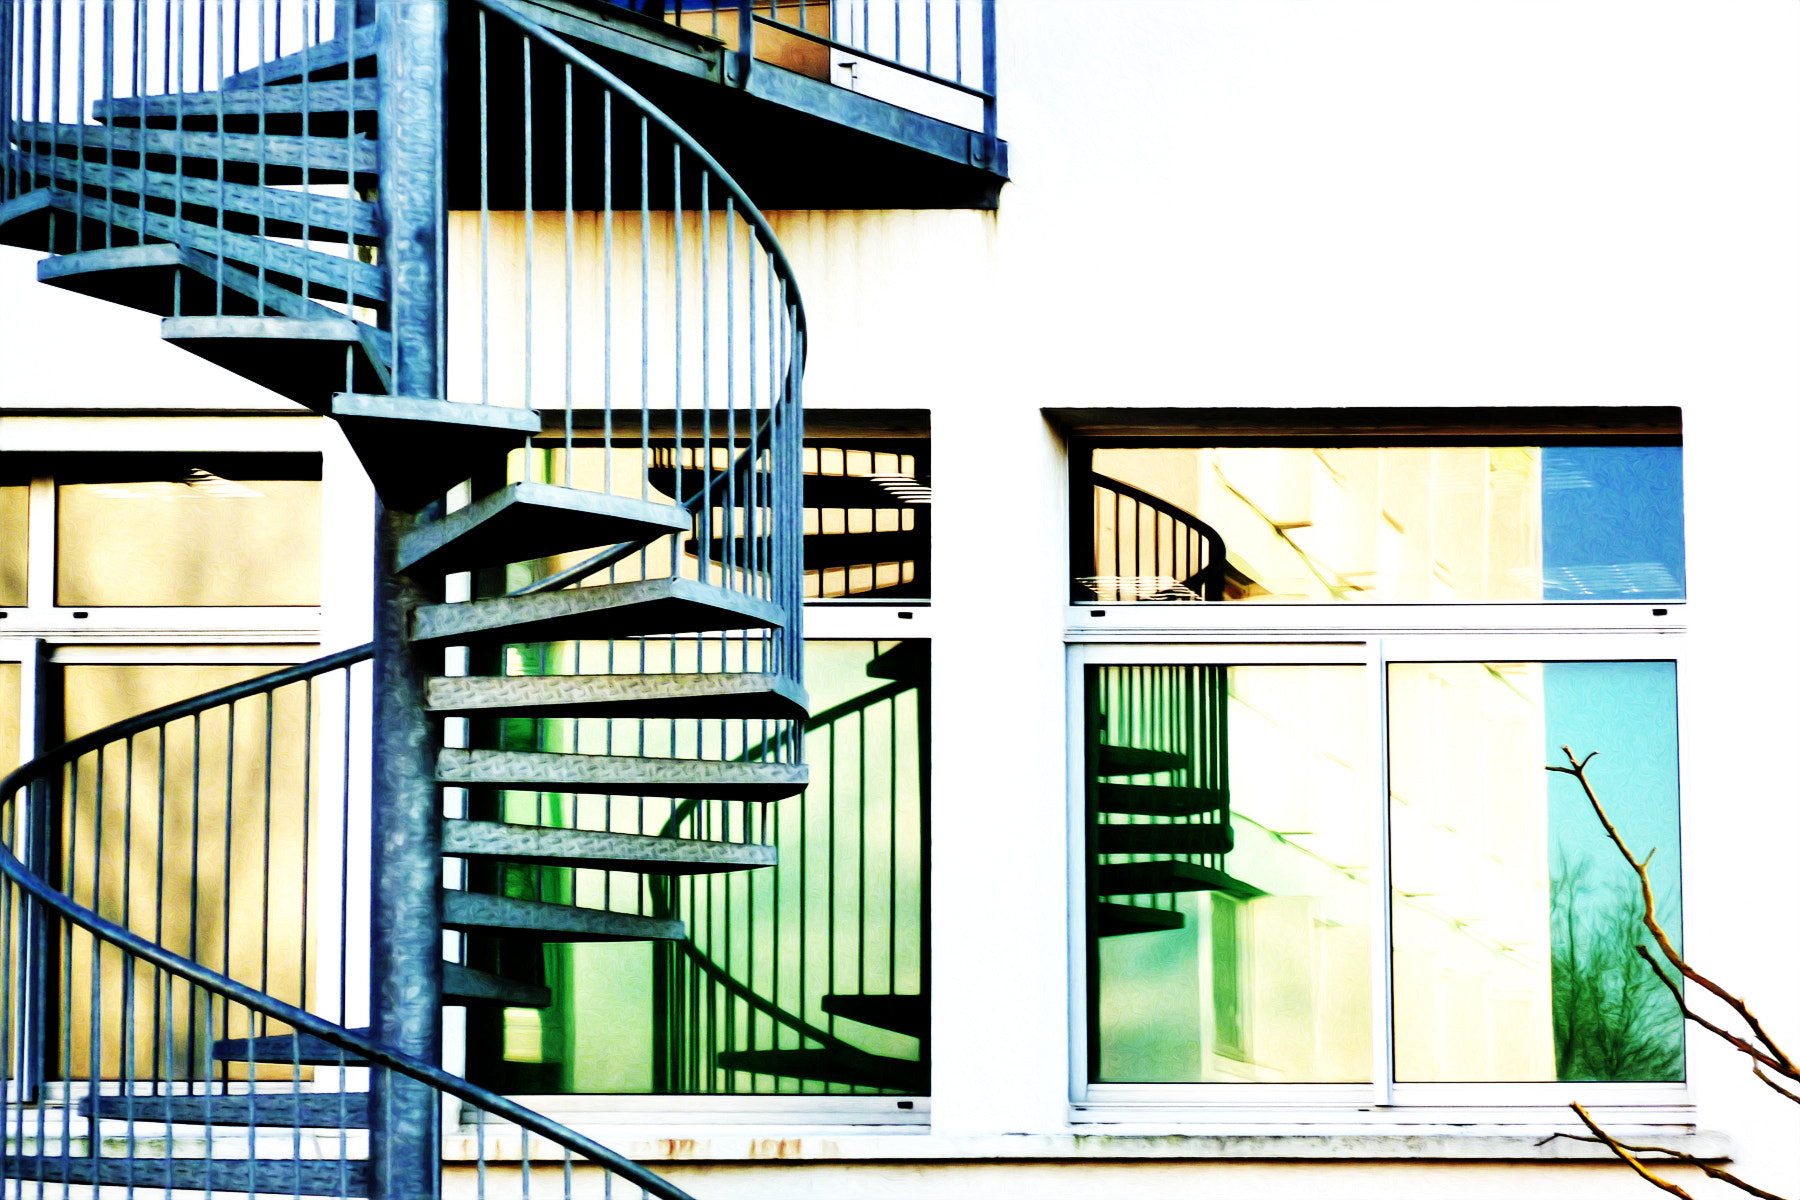 Photograph Stairs of reflection... 2 by Nadine Moynat on 500px